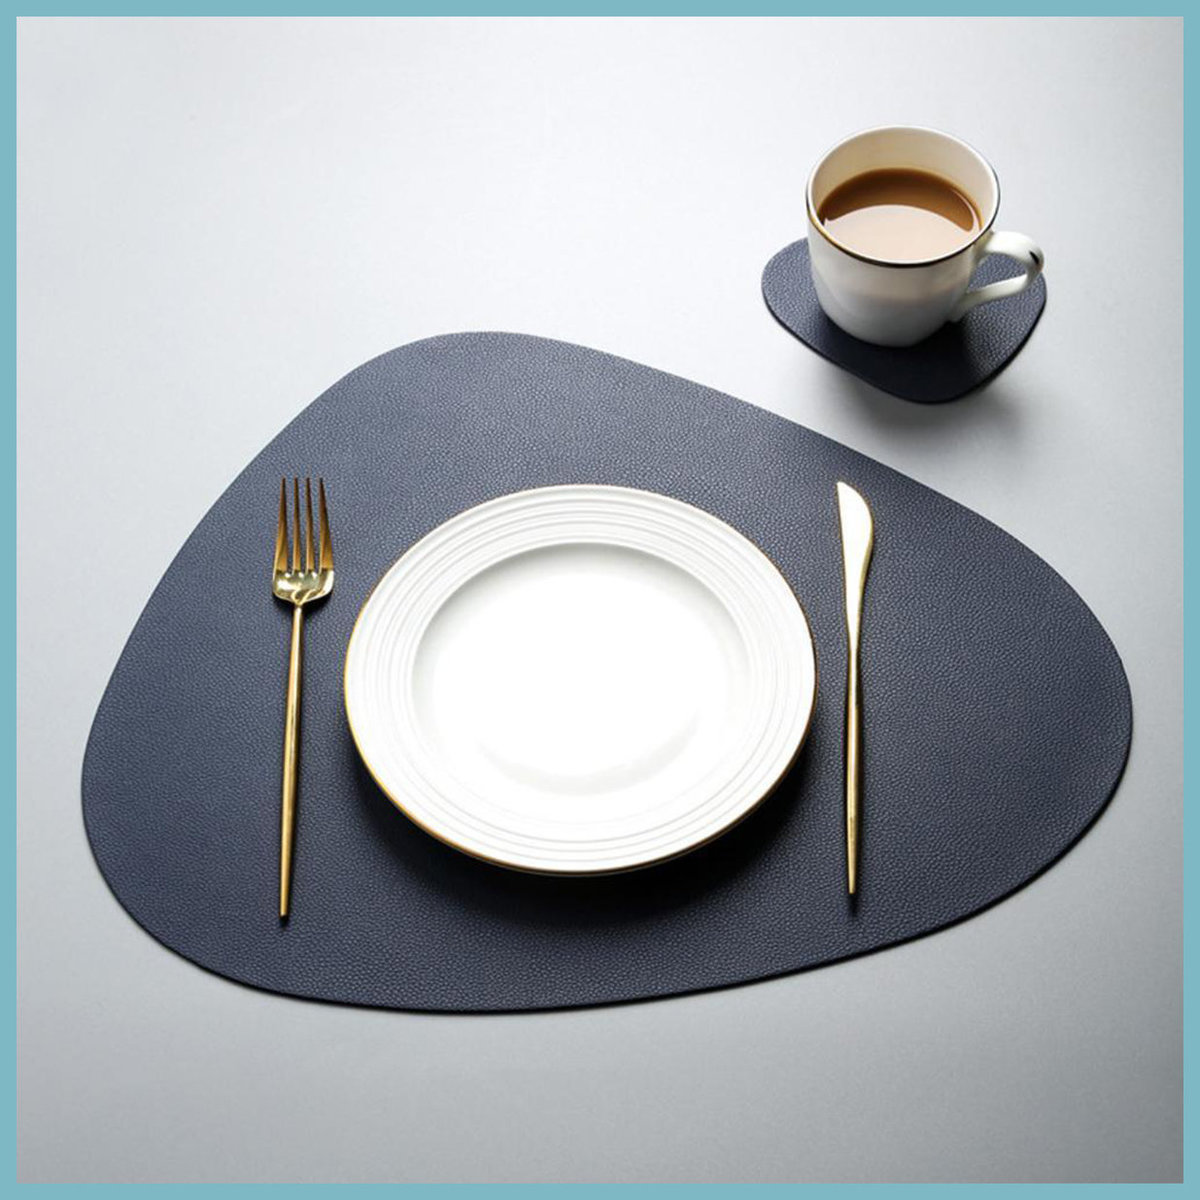 Nordic Placemats-Dark Blue 1 Big 1 Small